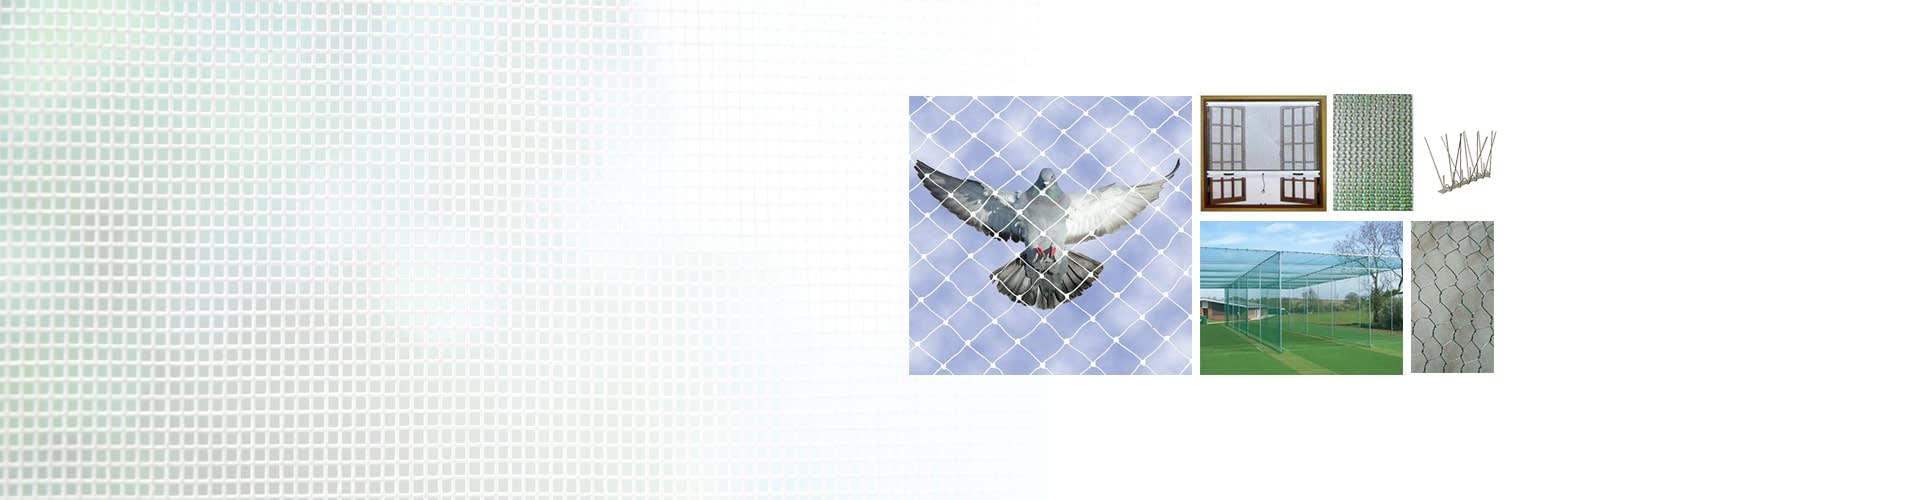 Anti Bird Pigeon Netting Solutions and Services